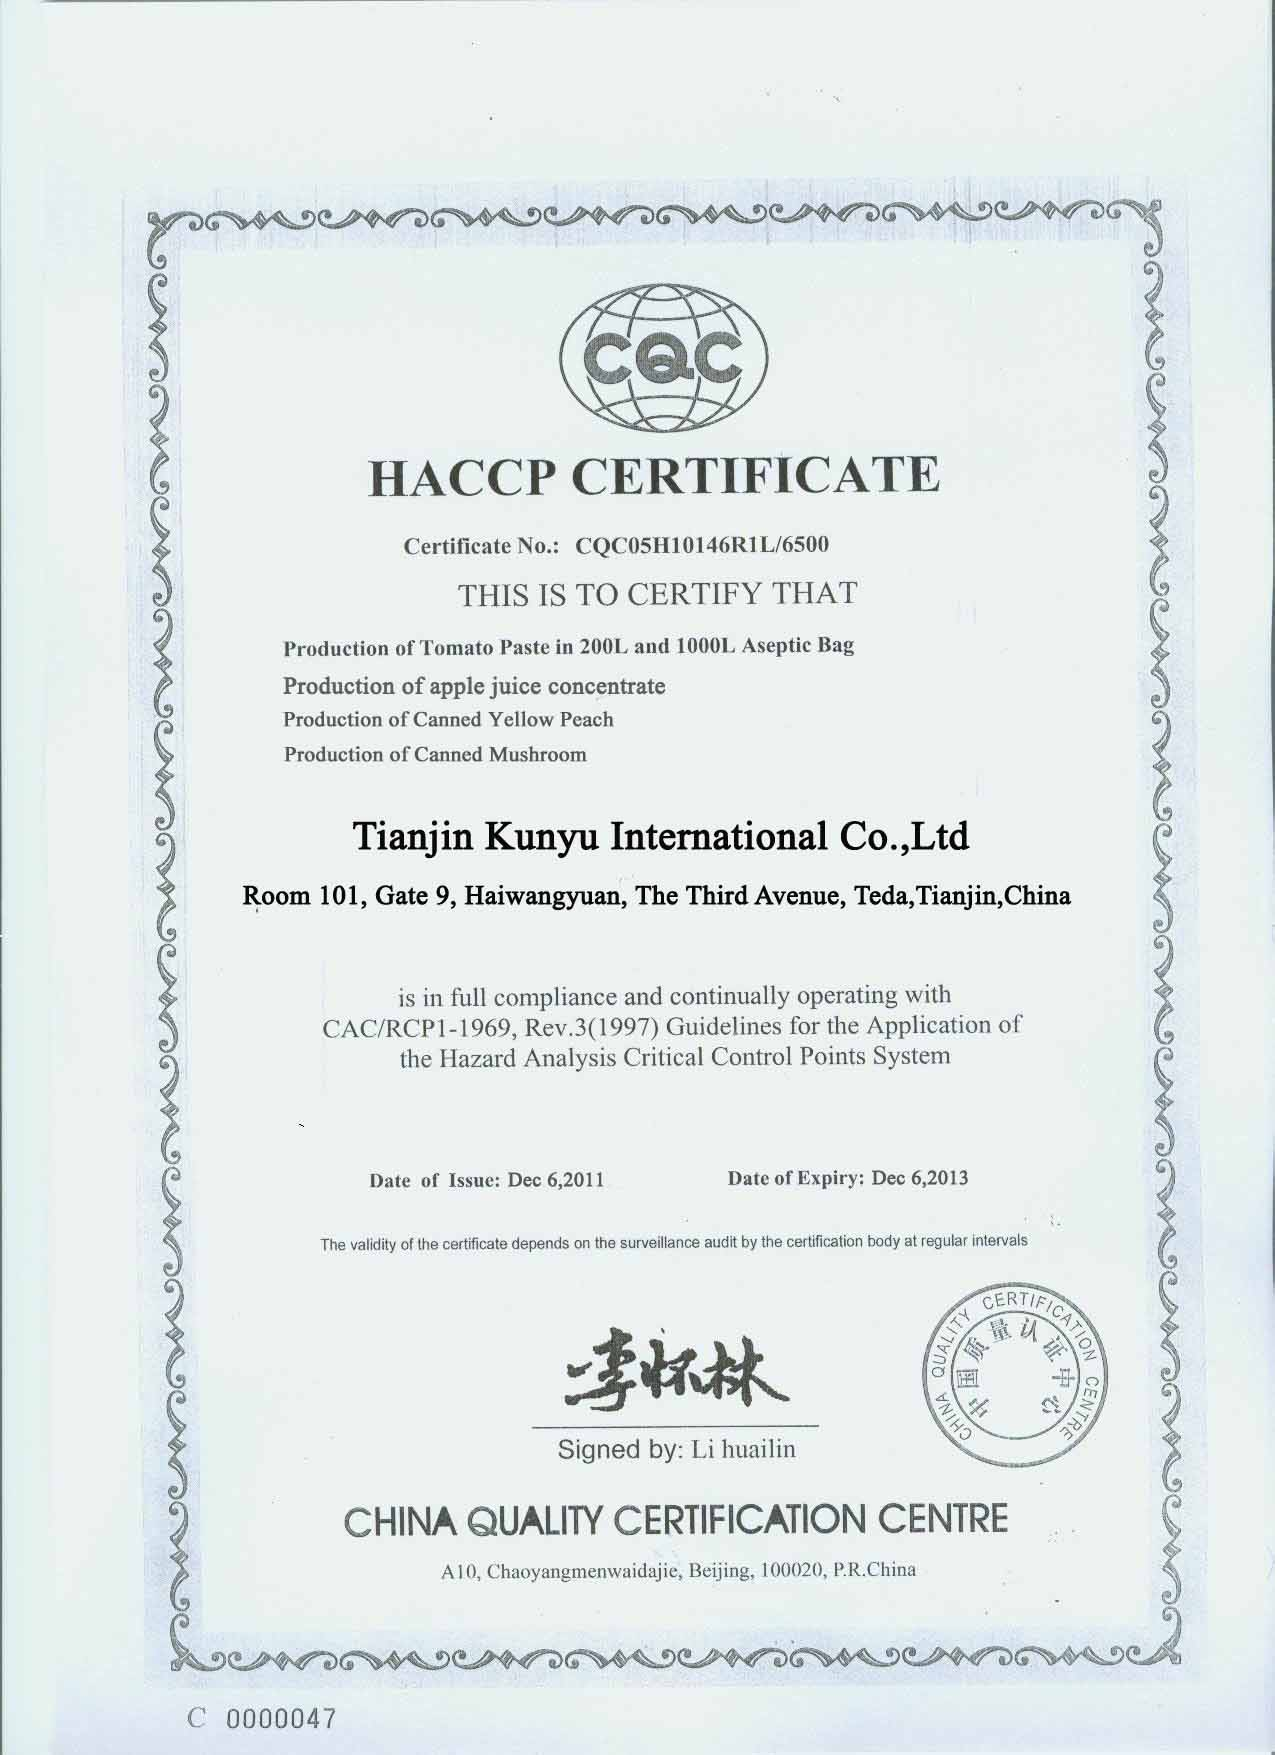 how to get haccp certification